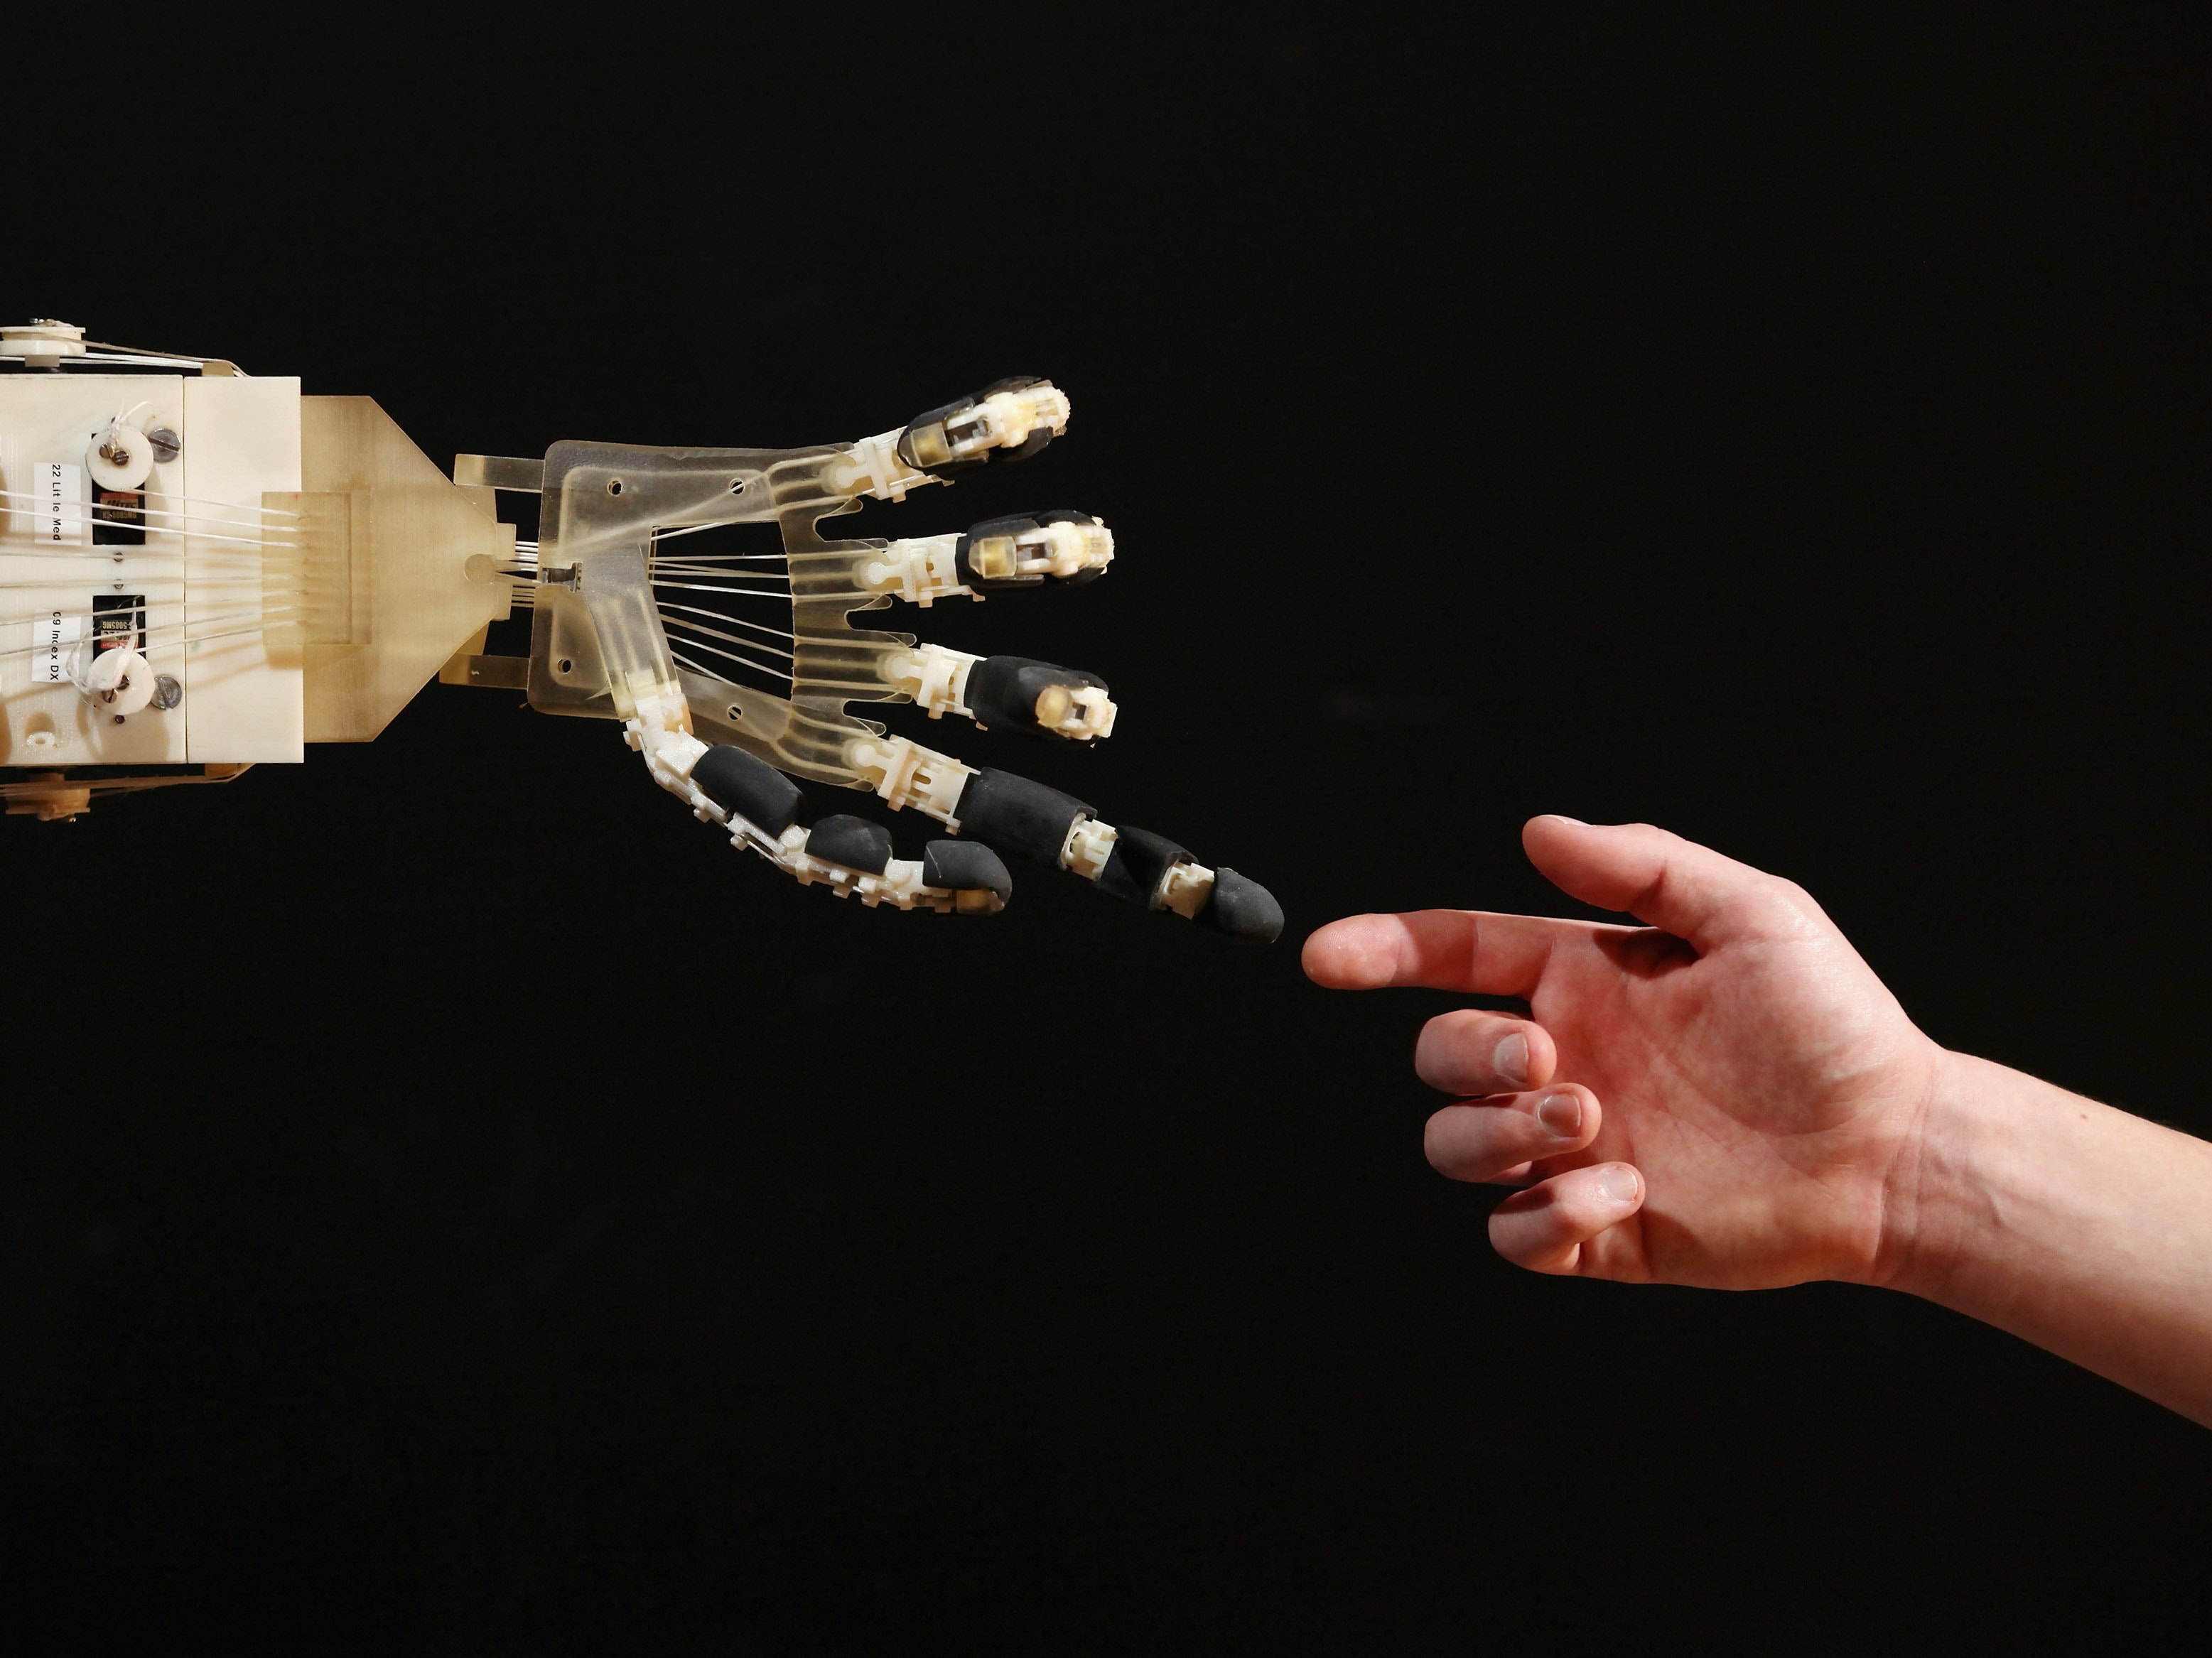 Robotics student Gildo Andreoni interacts with a Dexmart robotic hand built at the University of Bologna in the Robotville exhibition at the Science Museum on November 29, 2011 in London, England. The Science Museum's Robotville exhibition showcases 20 unique and cutting-edge robots from European research laboratories, it  is free to enter and runs from December 1-4, 2011.